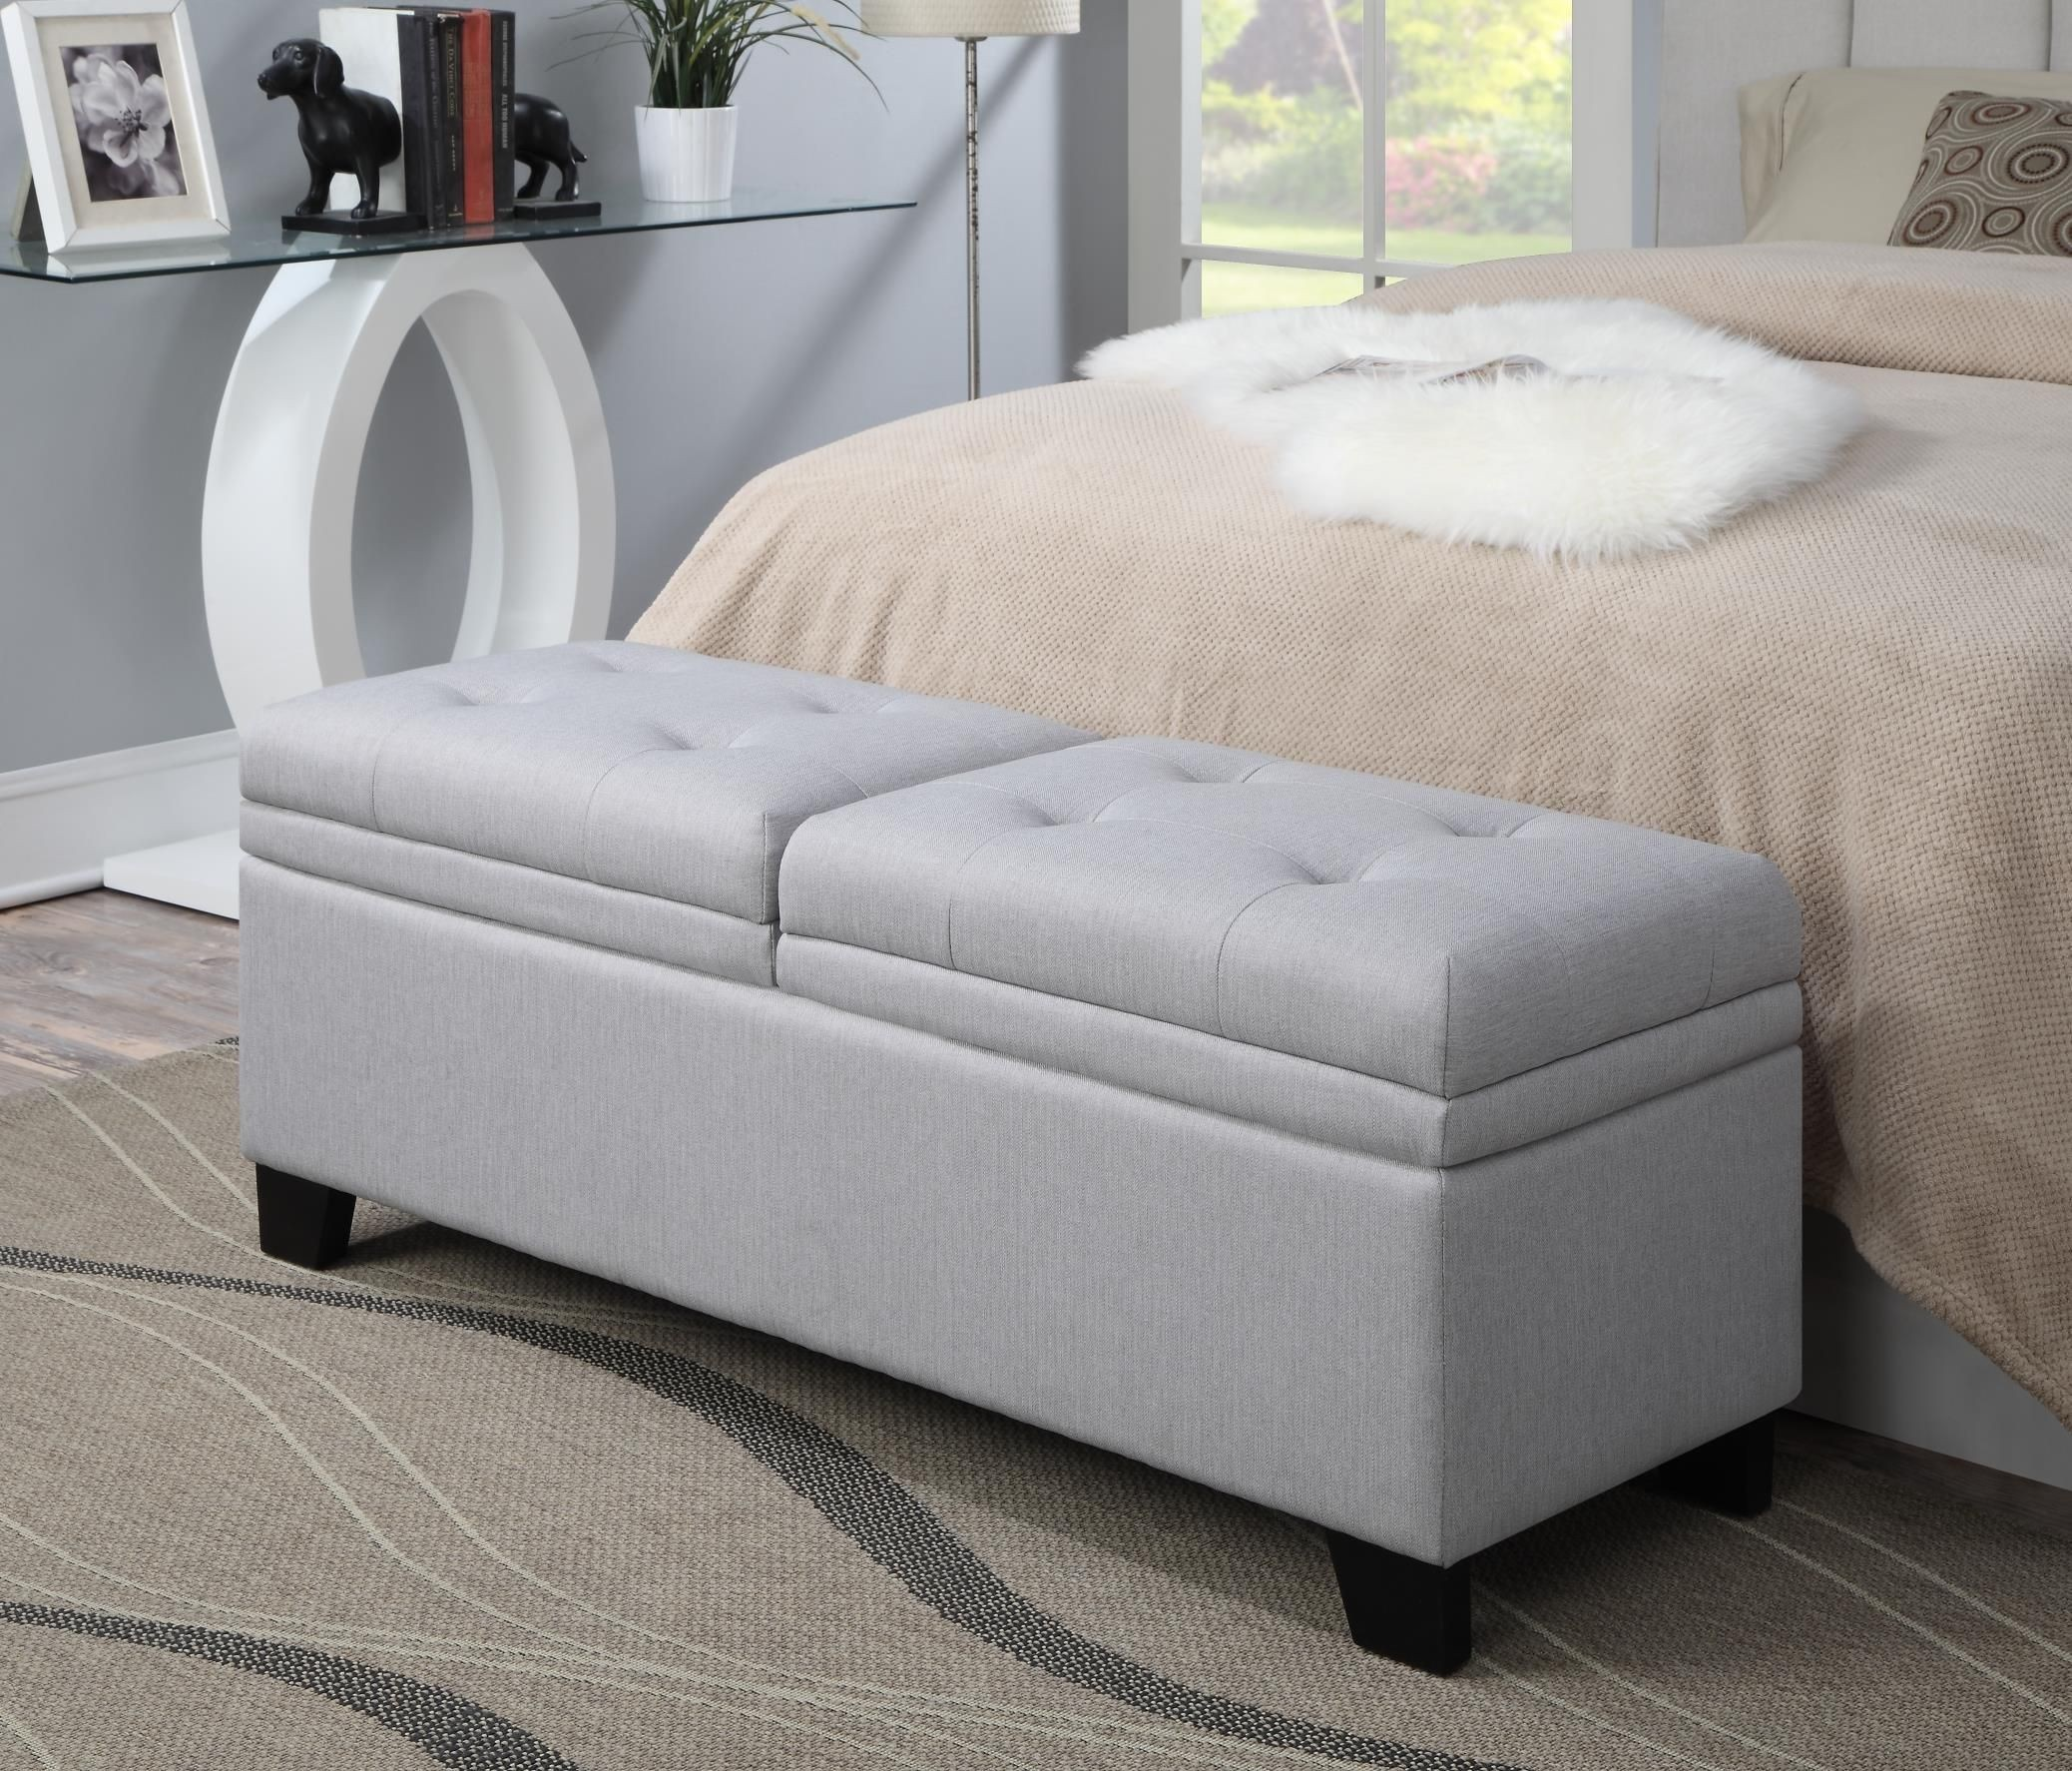 Varian Upholstered Storage Bedroom Bench Reviews: Trespass Marmor Upholstered Storage Bed Bench From Pulaski